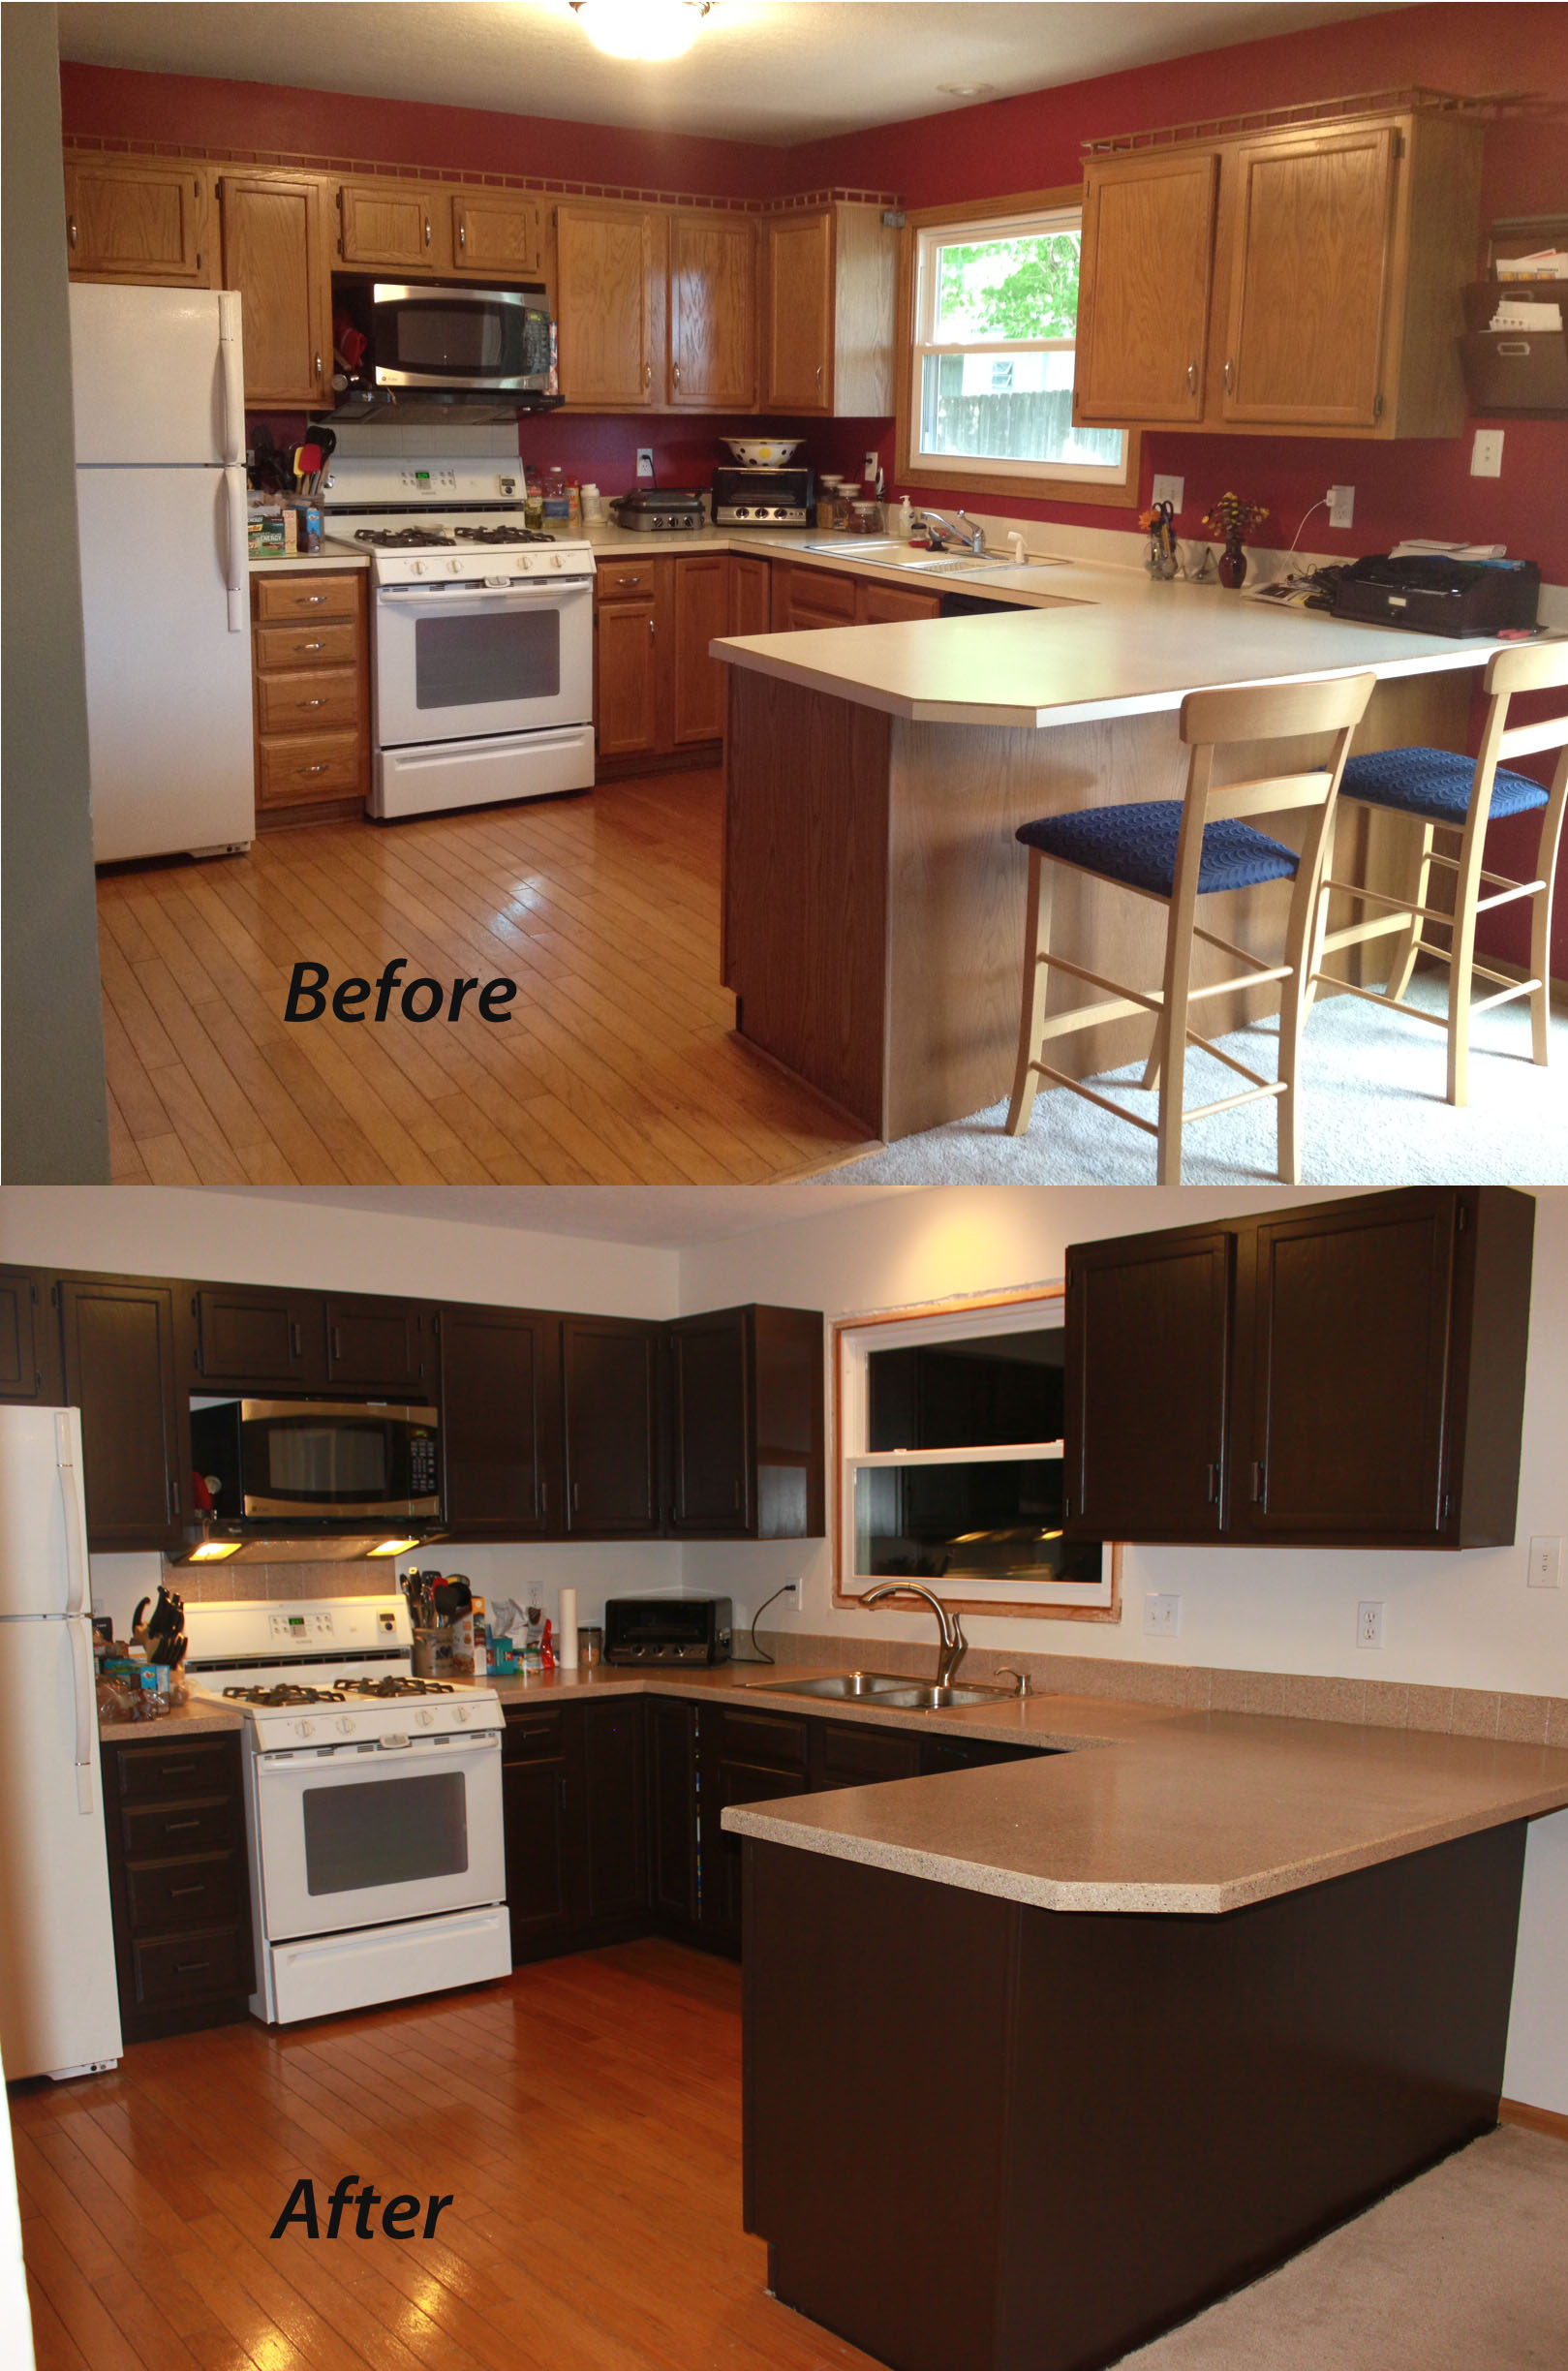 Painting Kitchen Cabinets Sometimes Homemade - What kind of paint for kitchen cabinets